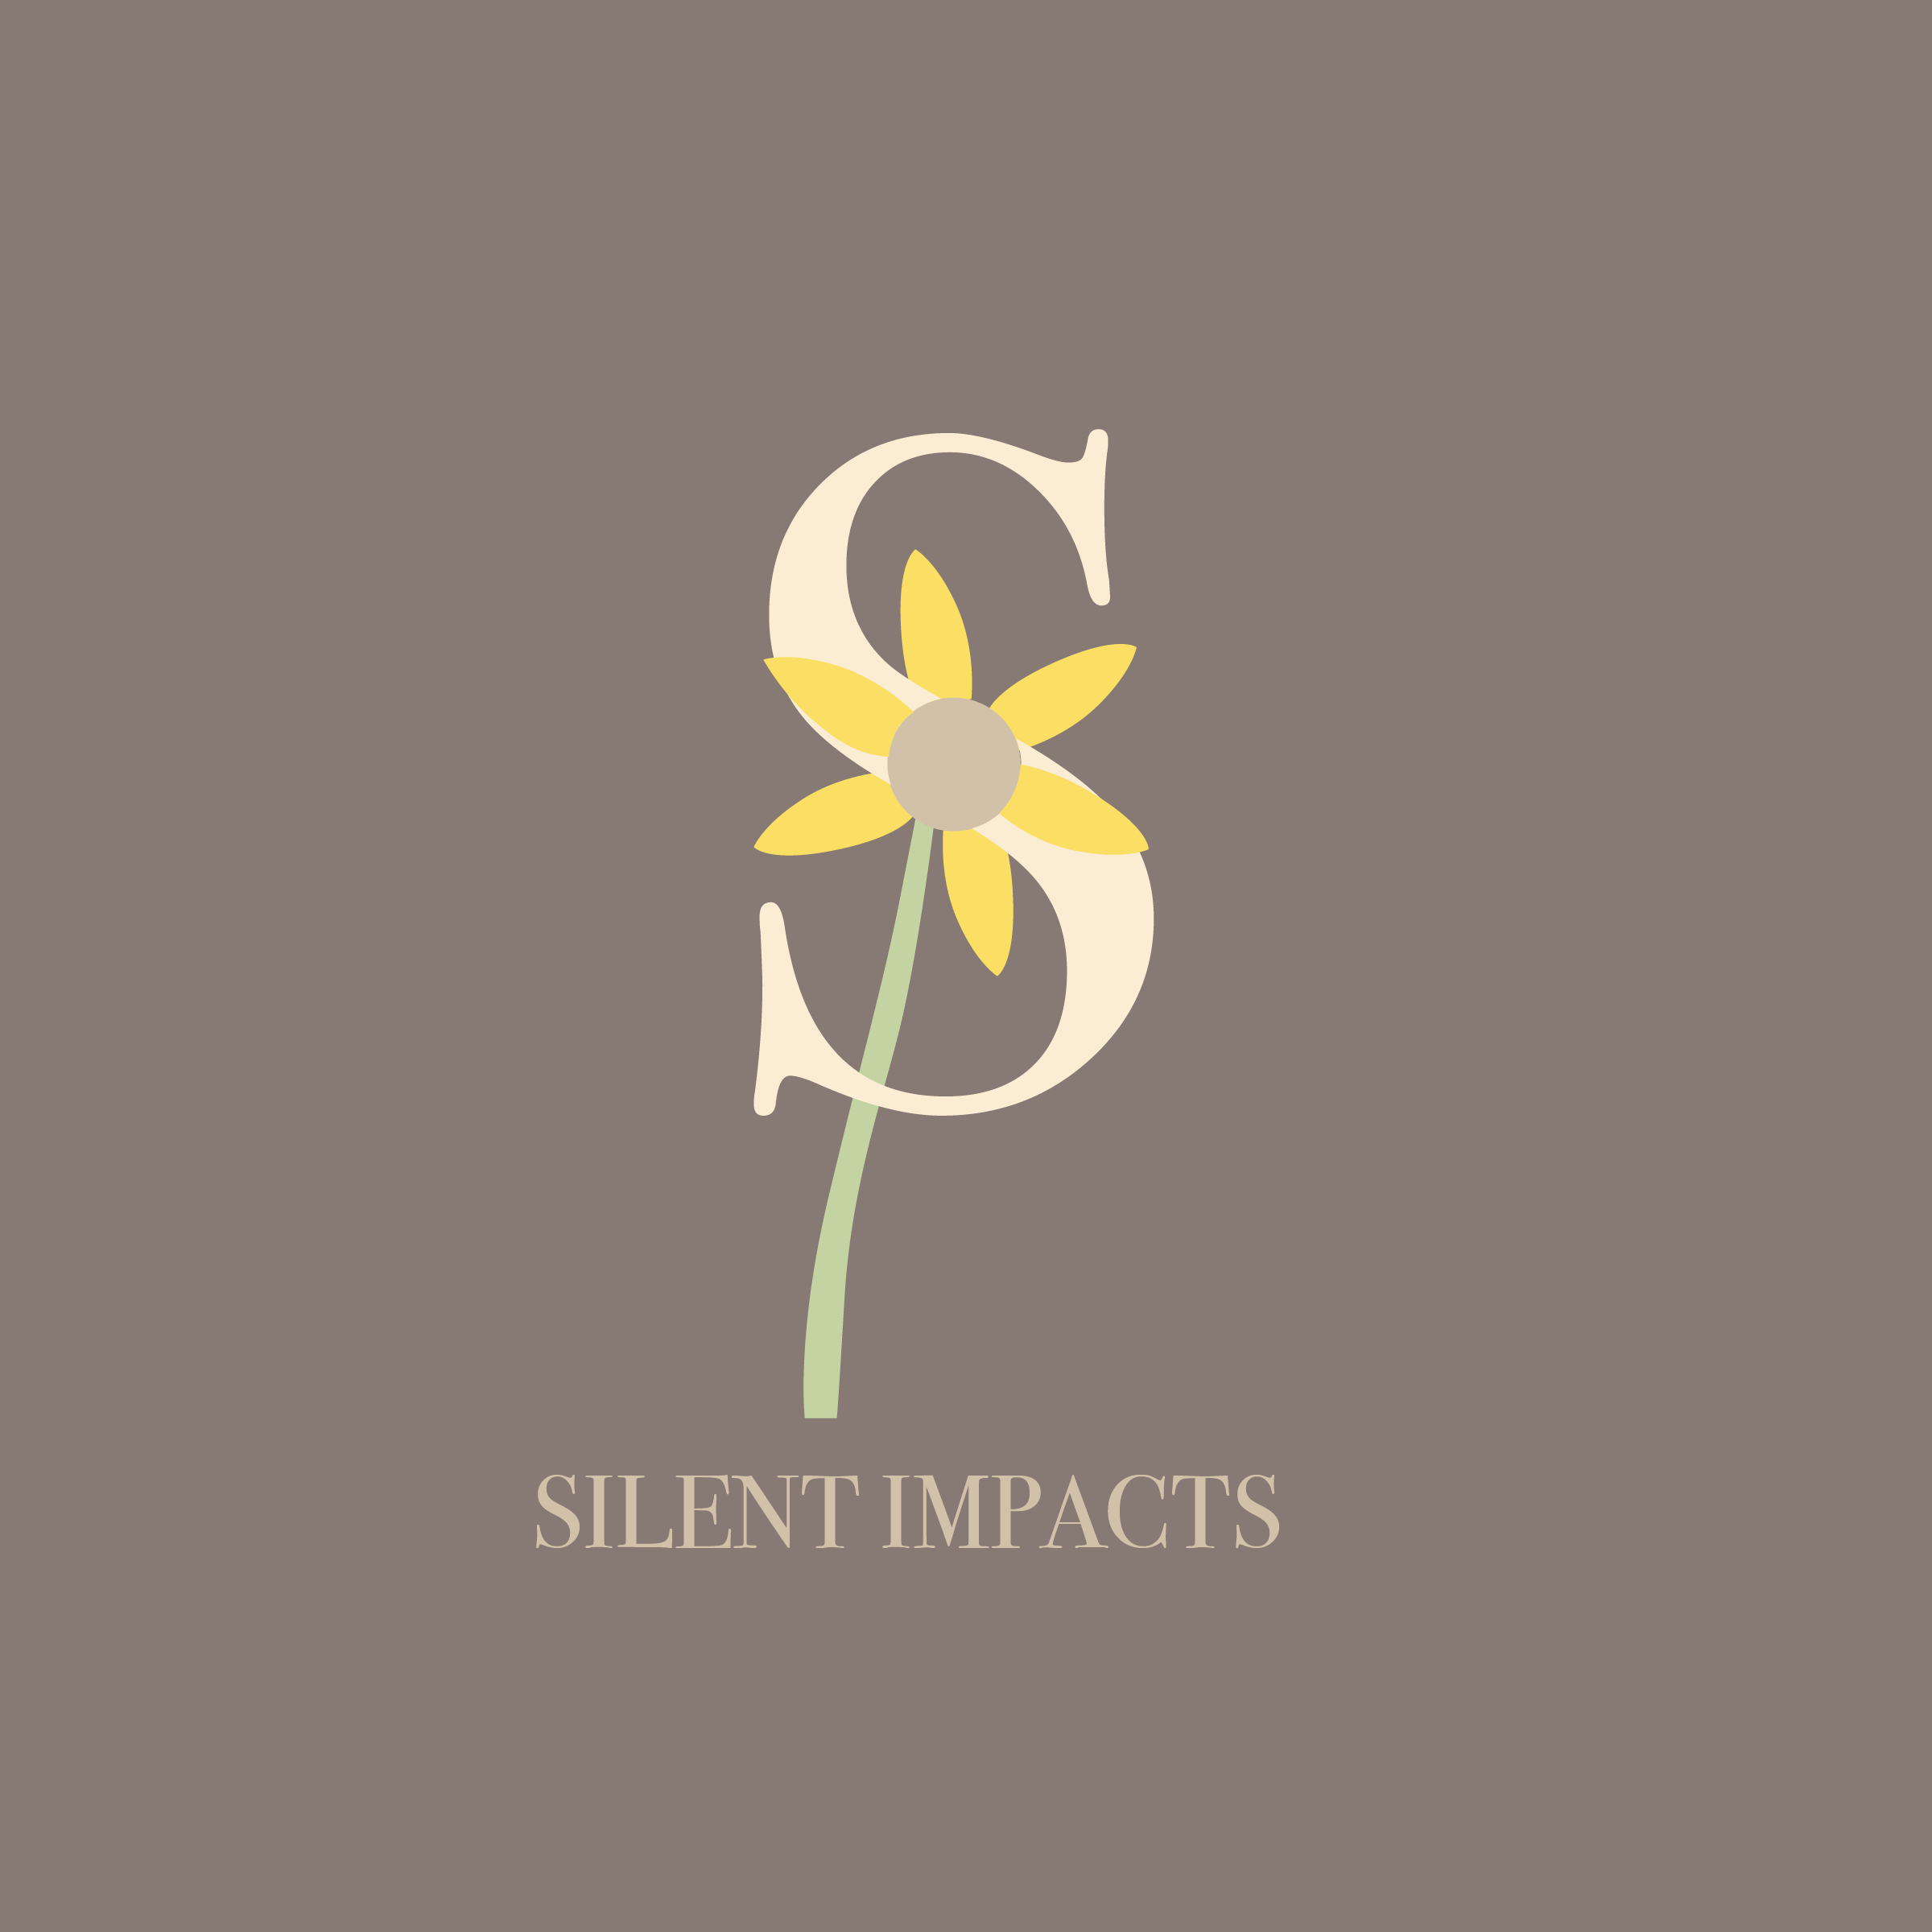 SILENT IMPACTS BRAND IDENTITY -